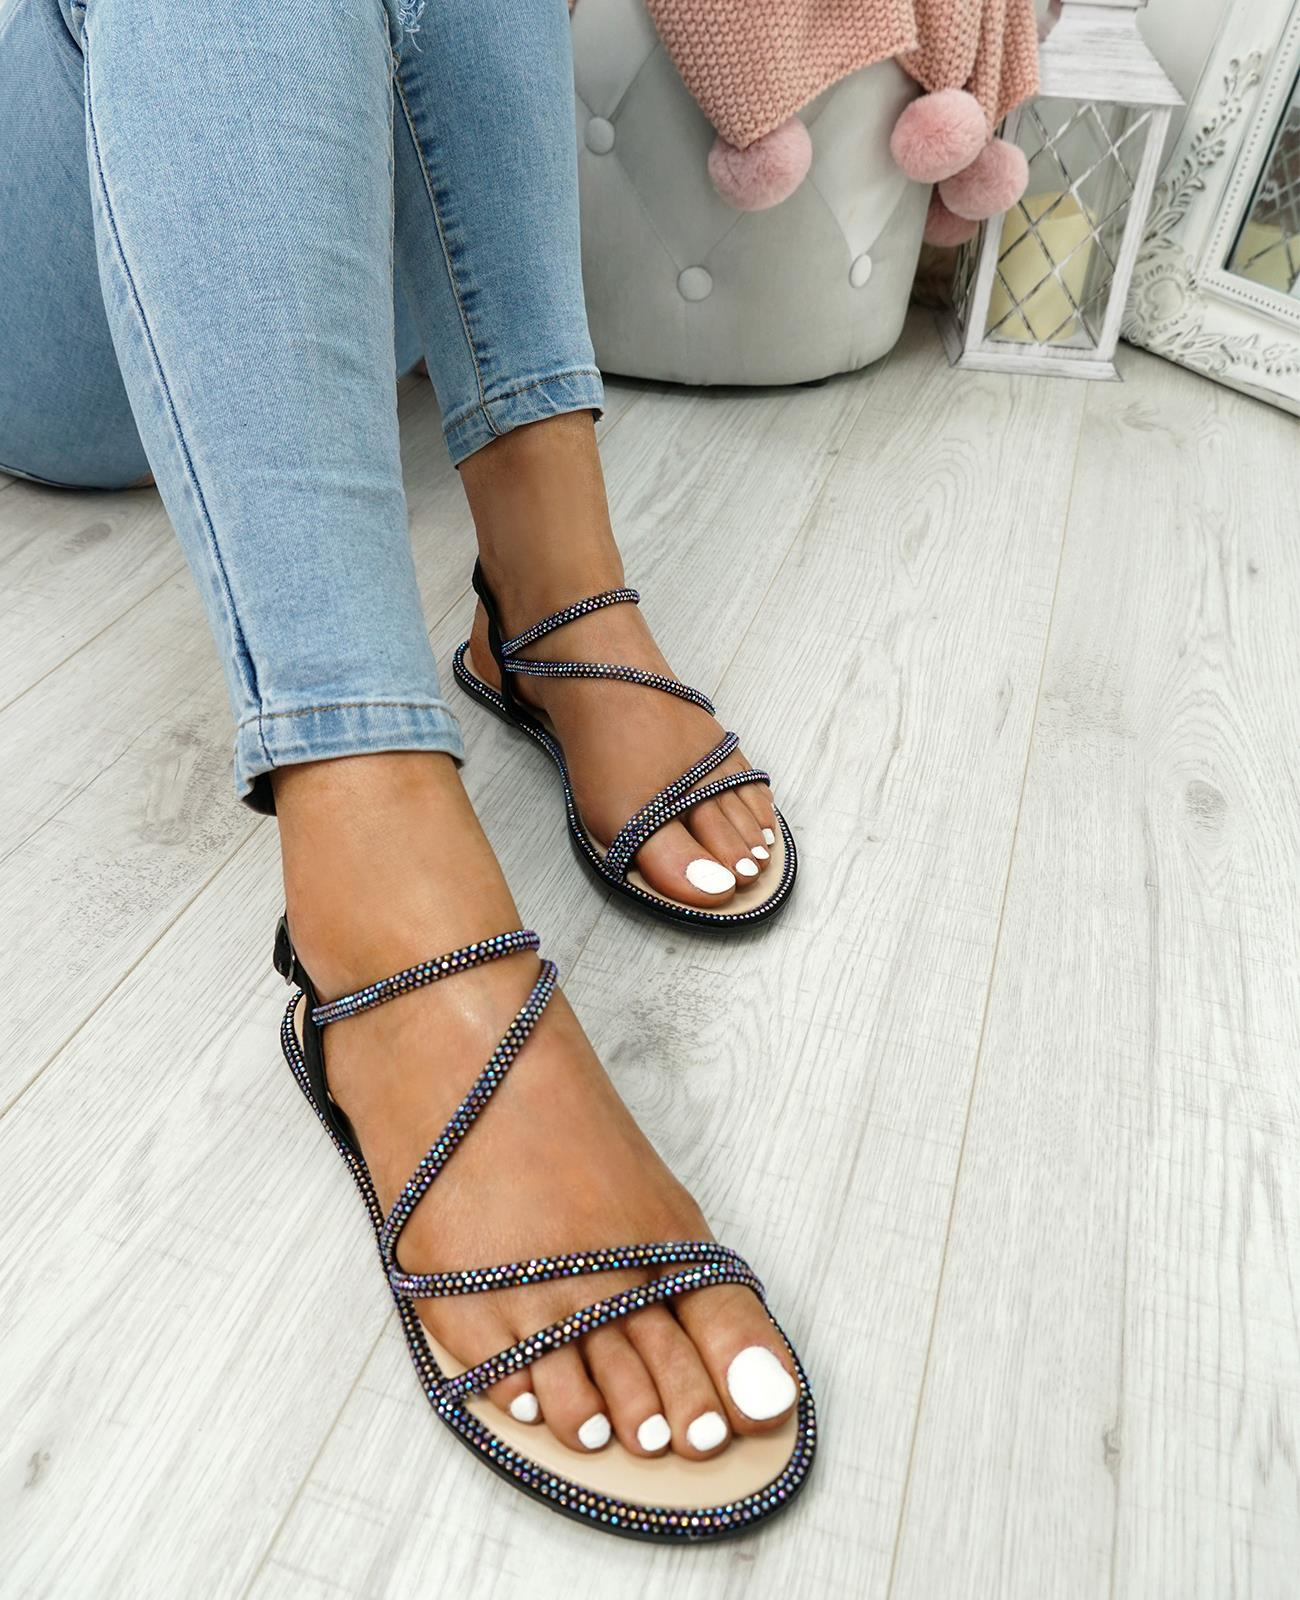 WOMENS-LADIES-STUDDED-ANKLE-STRAP-FLAT-SHOES-PARTY-CLUB-SANDALS-SHOES-SIZE-UK thumbnail 6